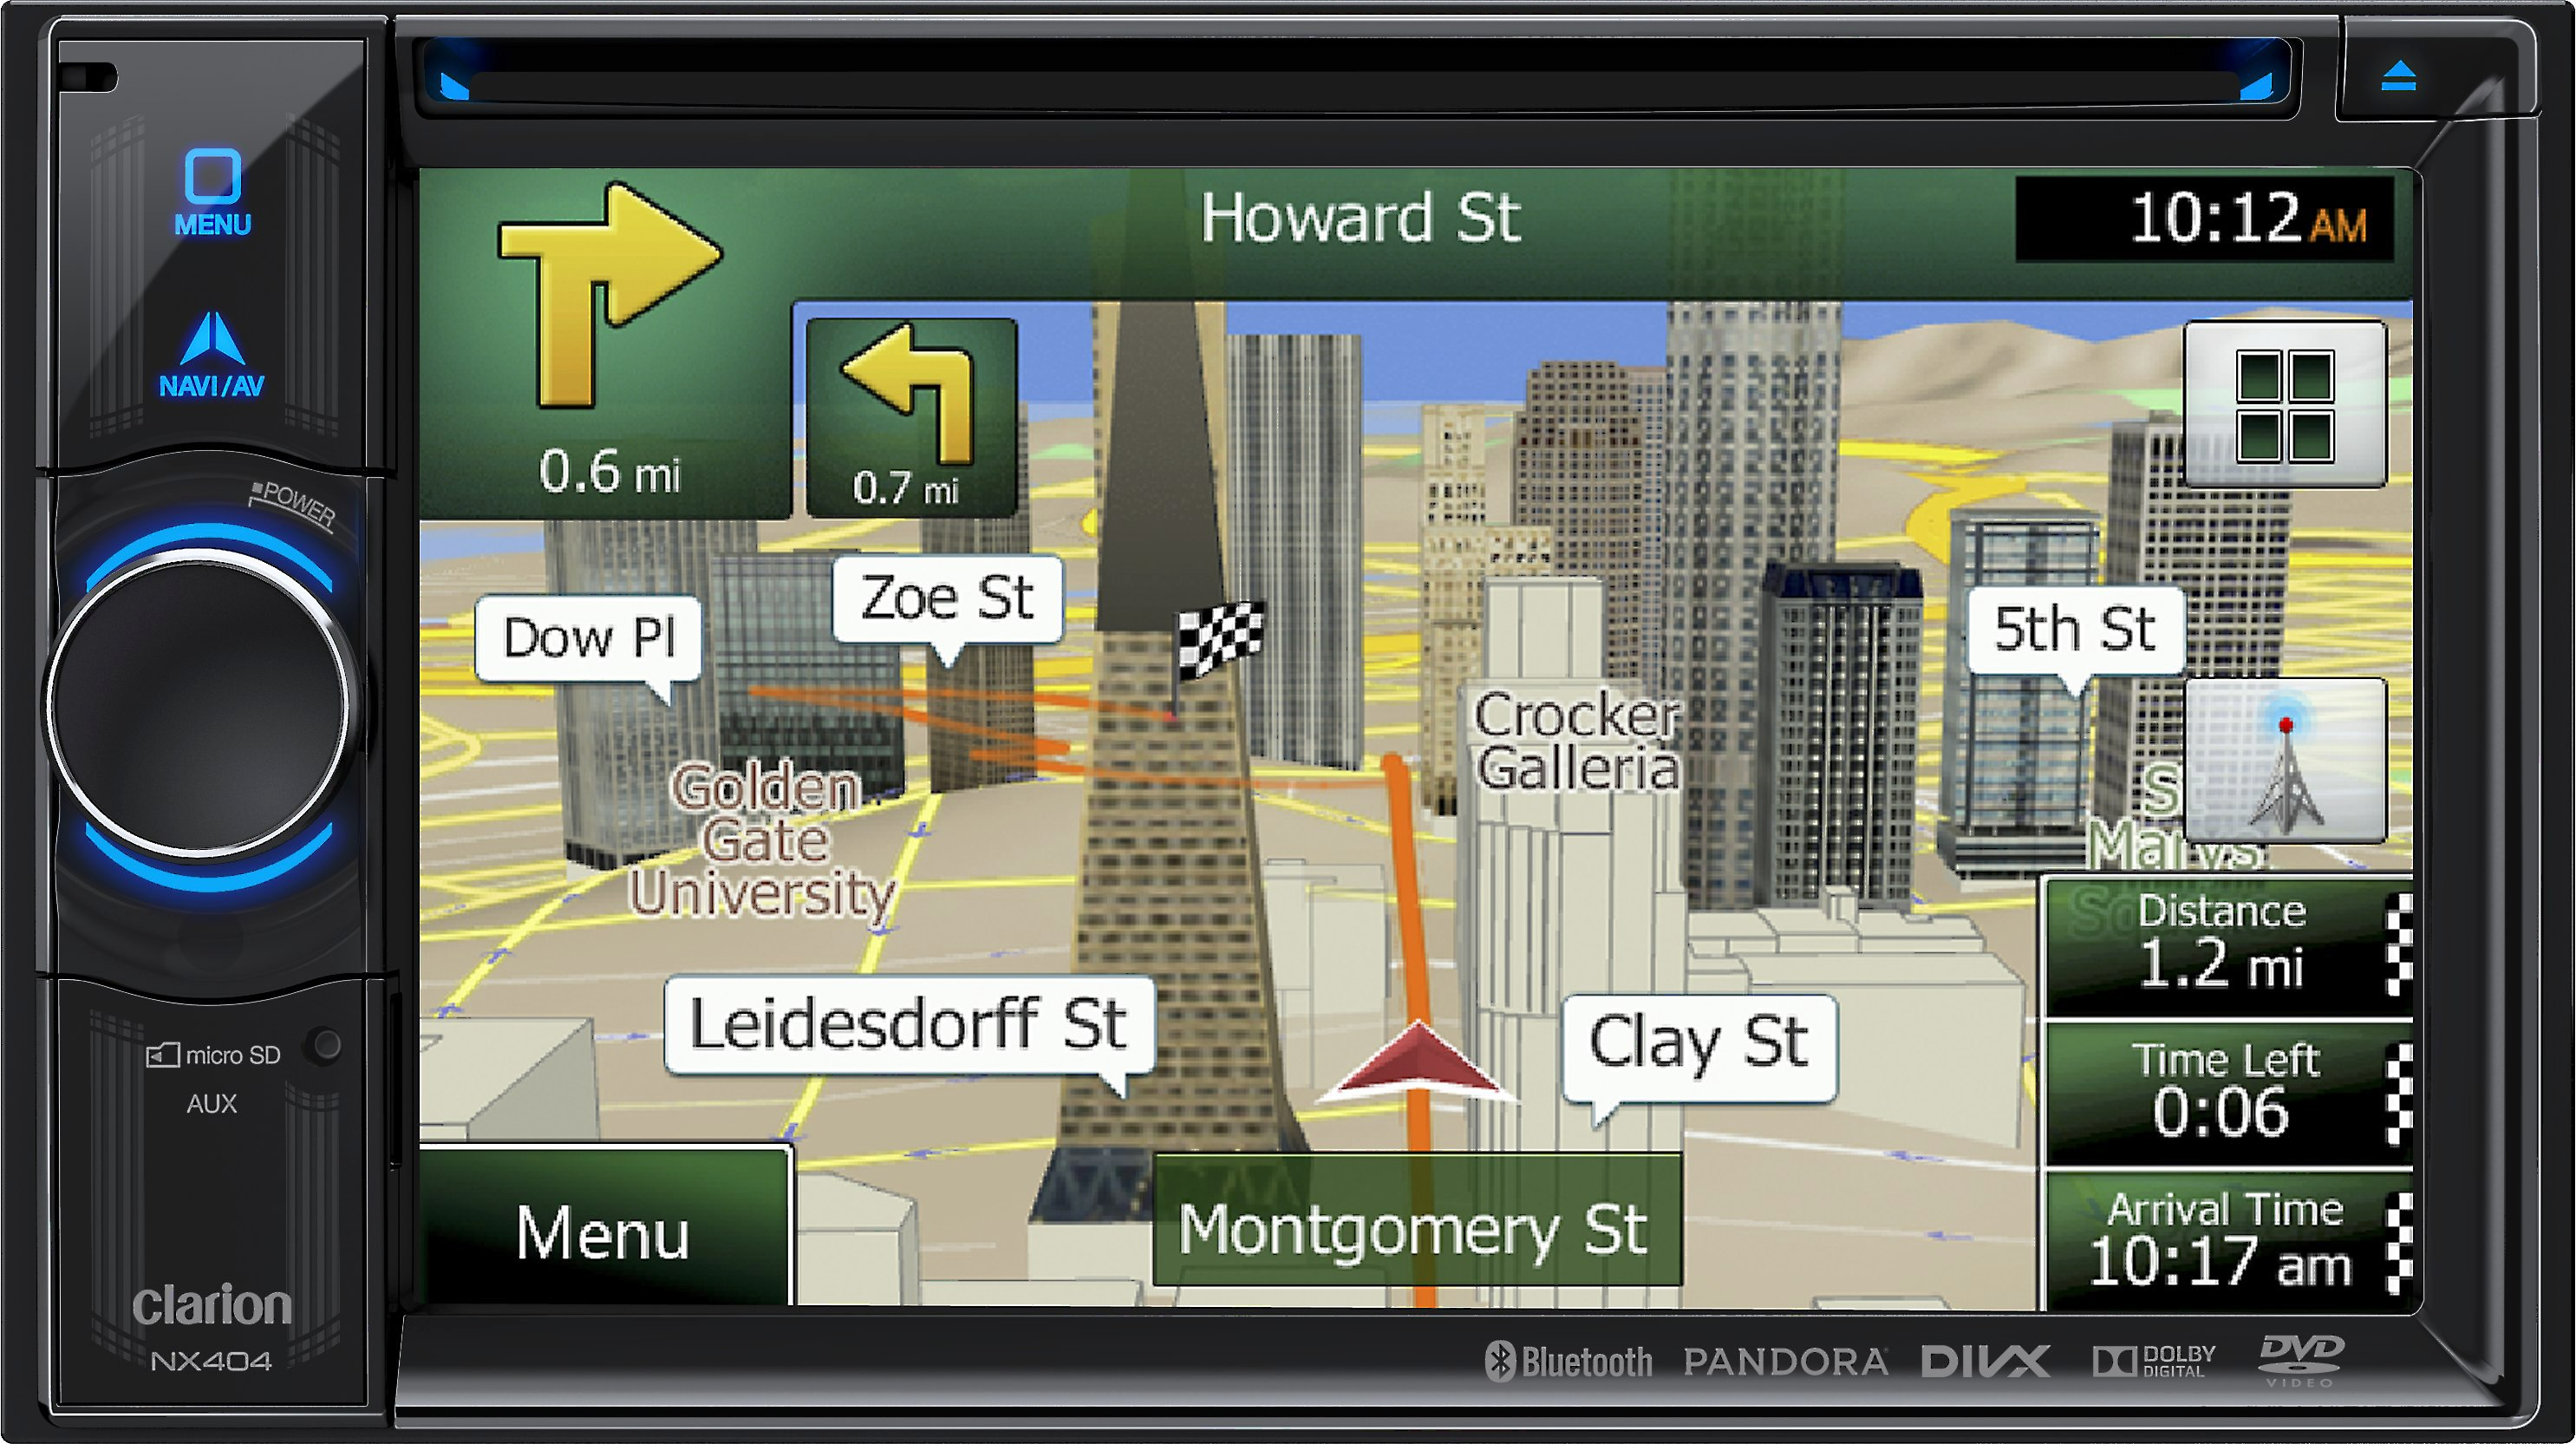 Clarion navigation maps download | How Can I Get the Latest